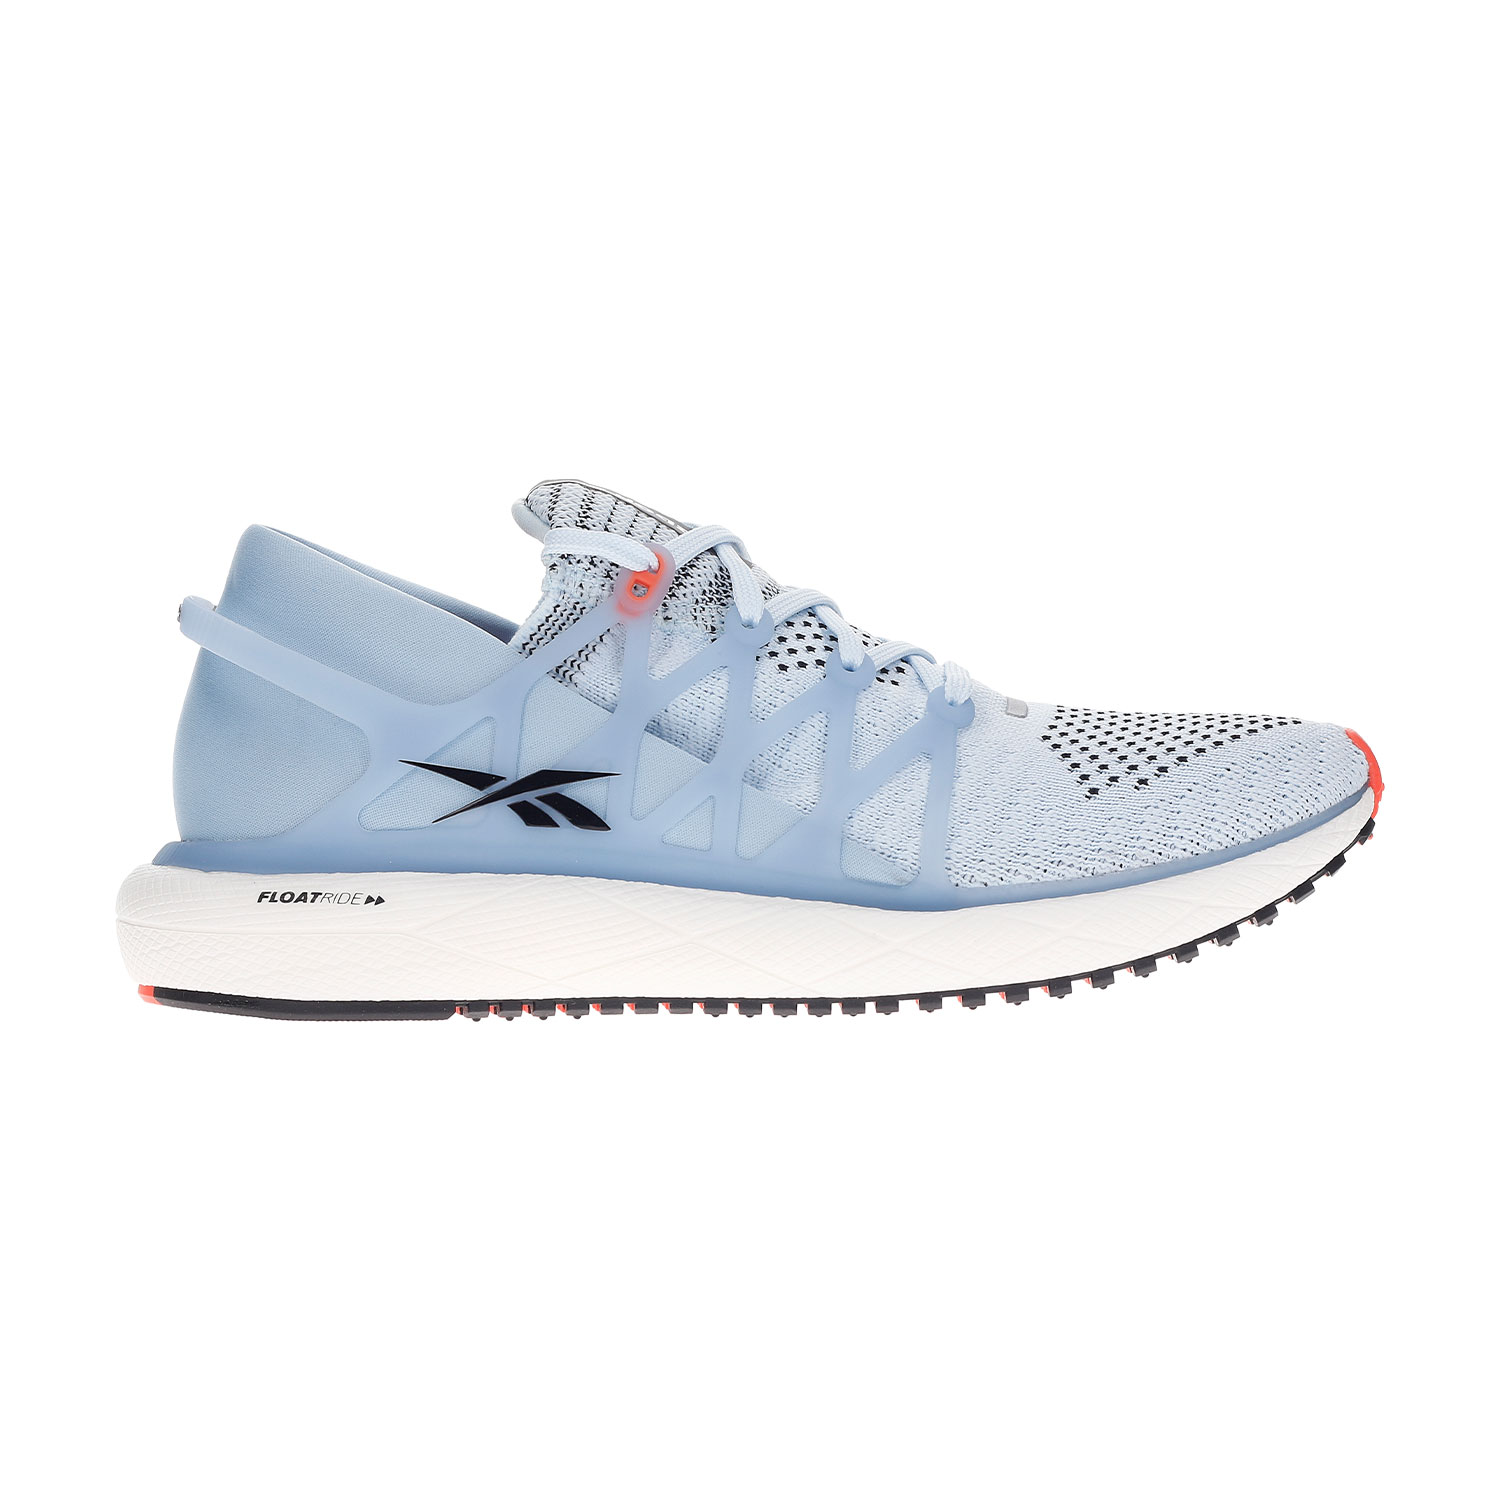 Reebok Floatride Run 2.0 - Glass Blue/Fluid Blue/Black